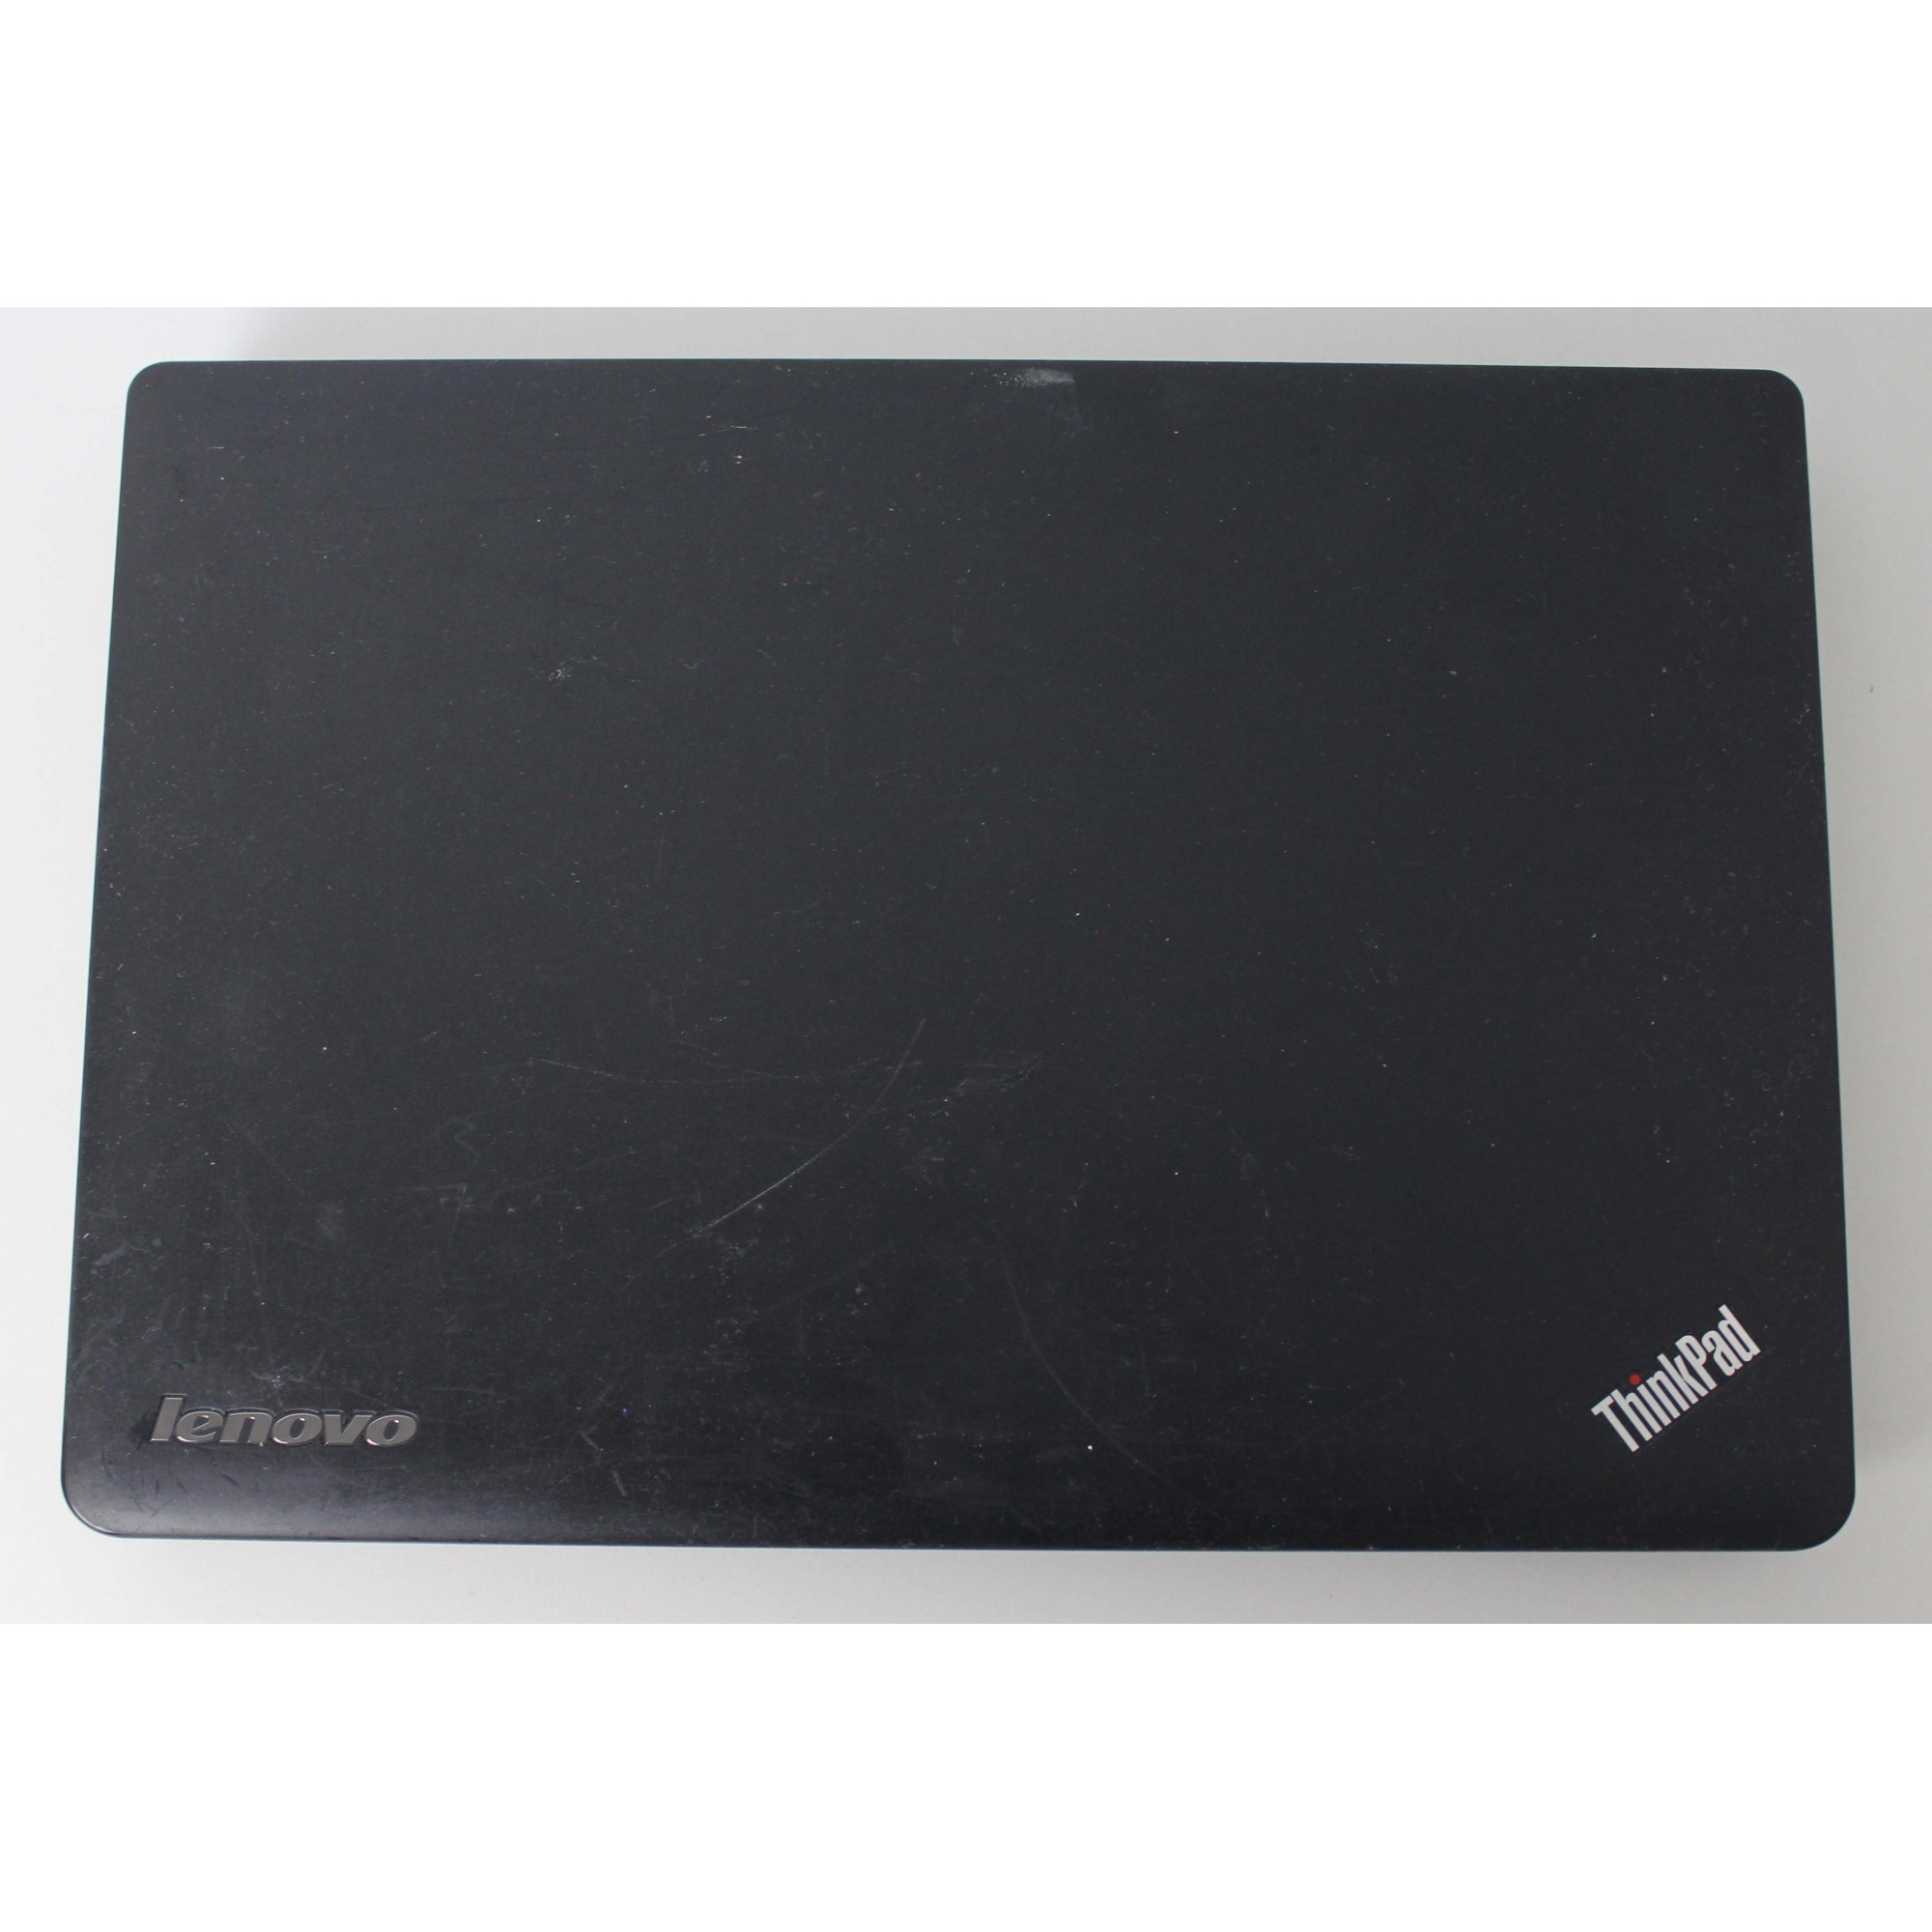 "Notebook Lenovo Thinkpad E430 14"", Core i5 2.5GHz, 8 GB, HD-1 TB"